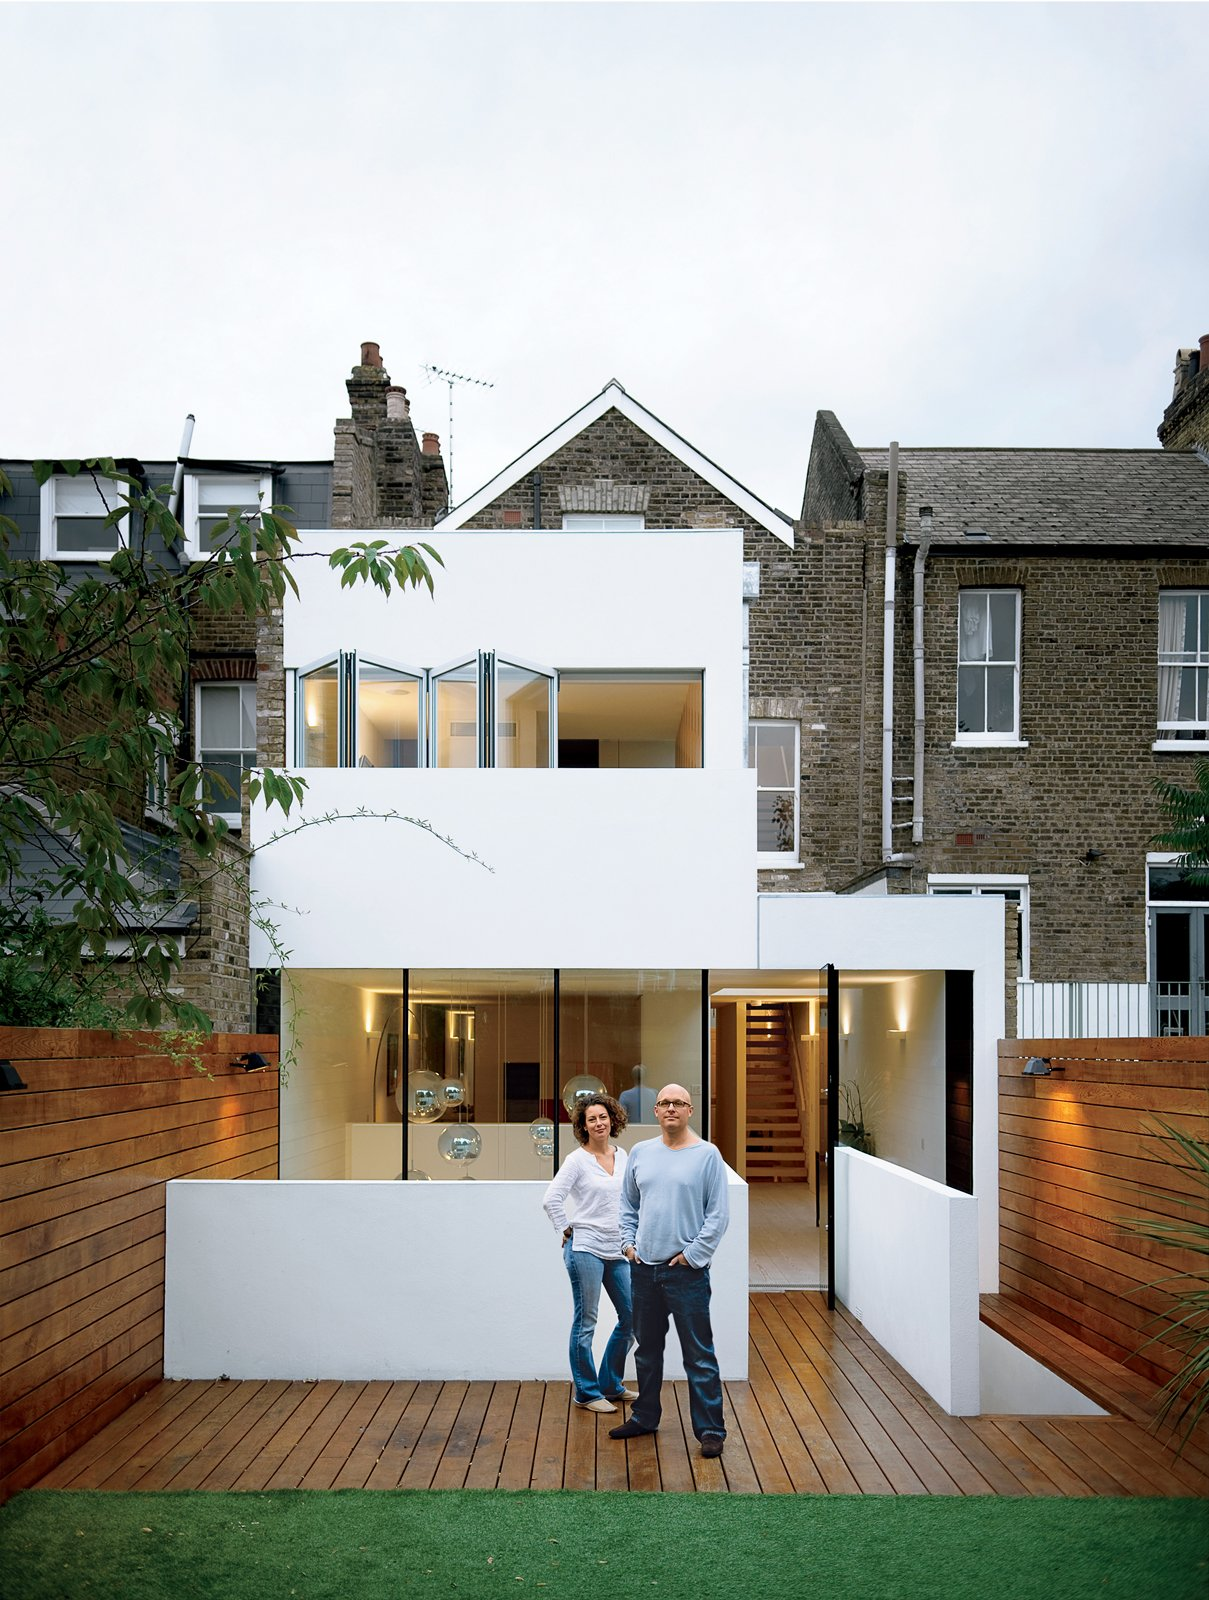 Outdoor, Small, Back Yard, and Wood Bruce Thatcher and Kirsty Leighton behind their London home.  Best Outdoor Back Yard Wood Photos from Composite Index